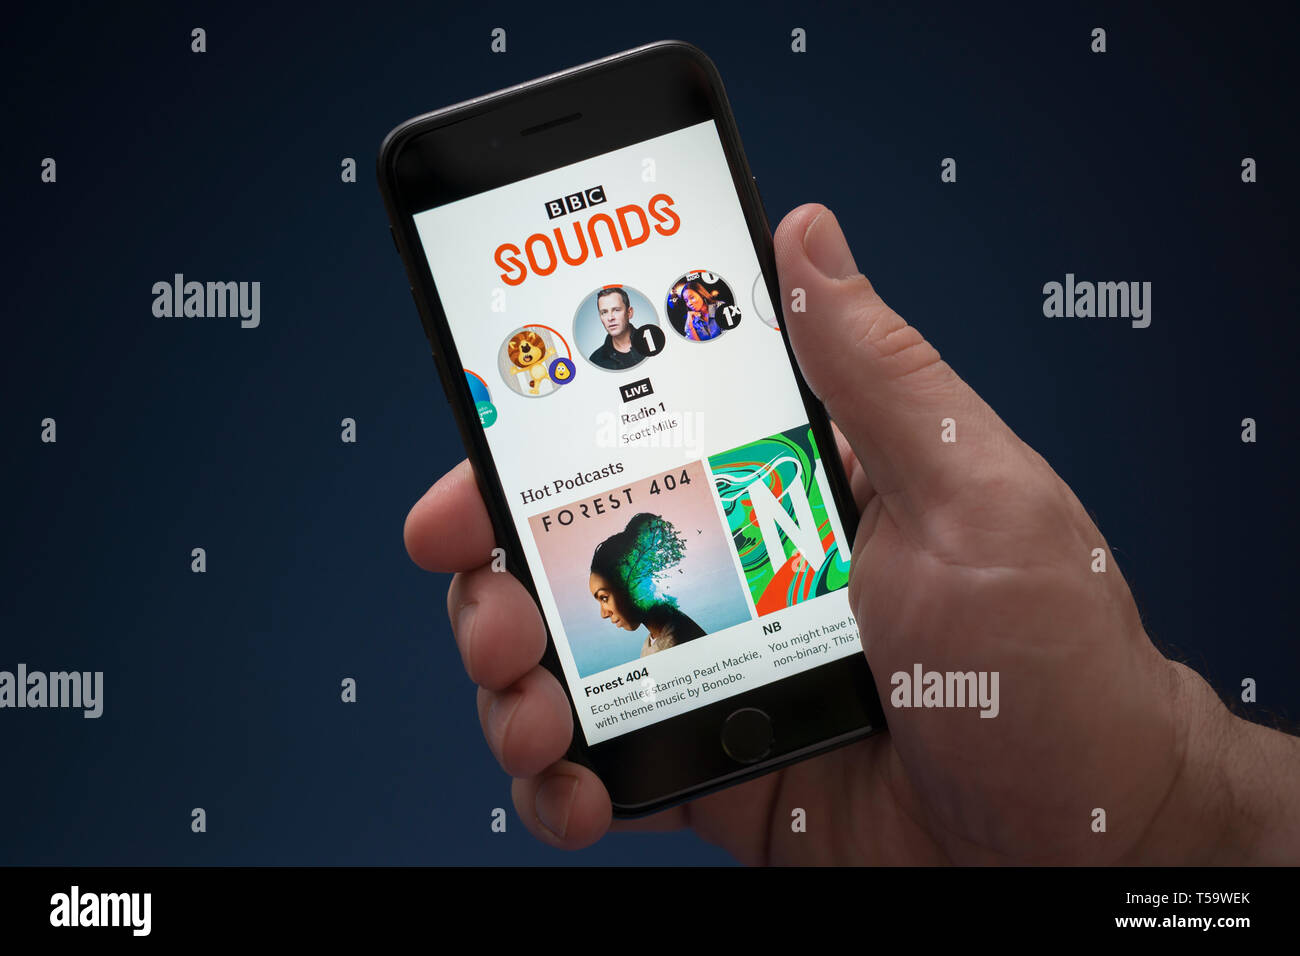 A man looks at his iPhone which displays the BBC Sounds logo (Editorial use only). - Stock Image